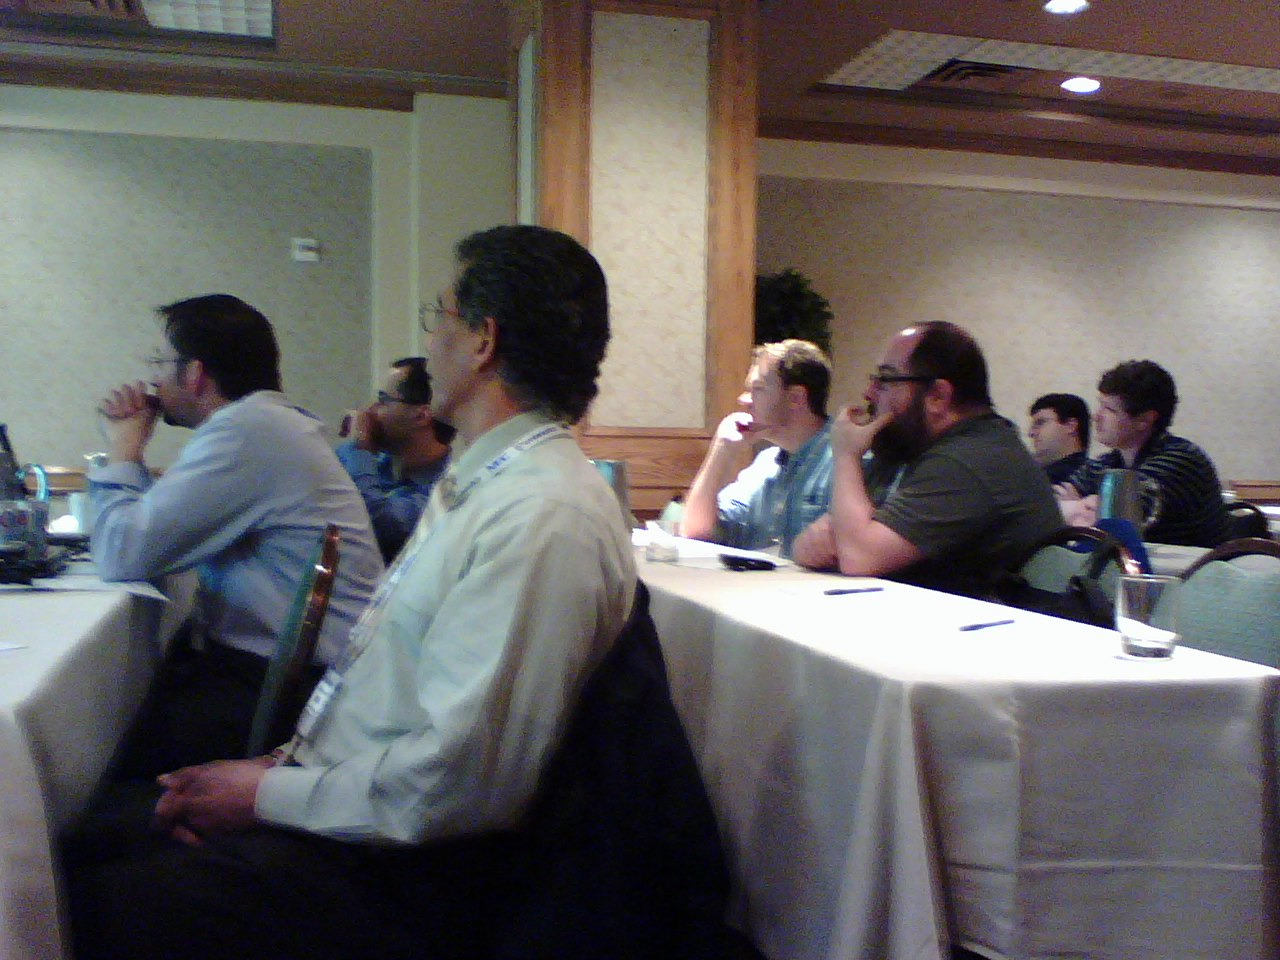 Attendees at a workshop on giving presentations by Howard Goldstein